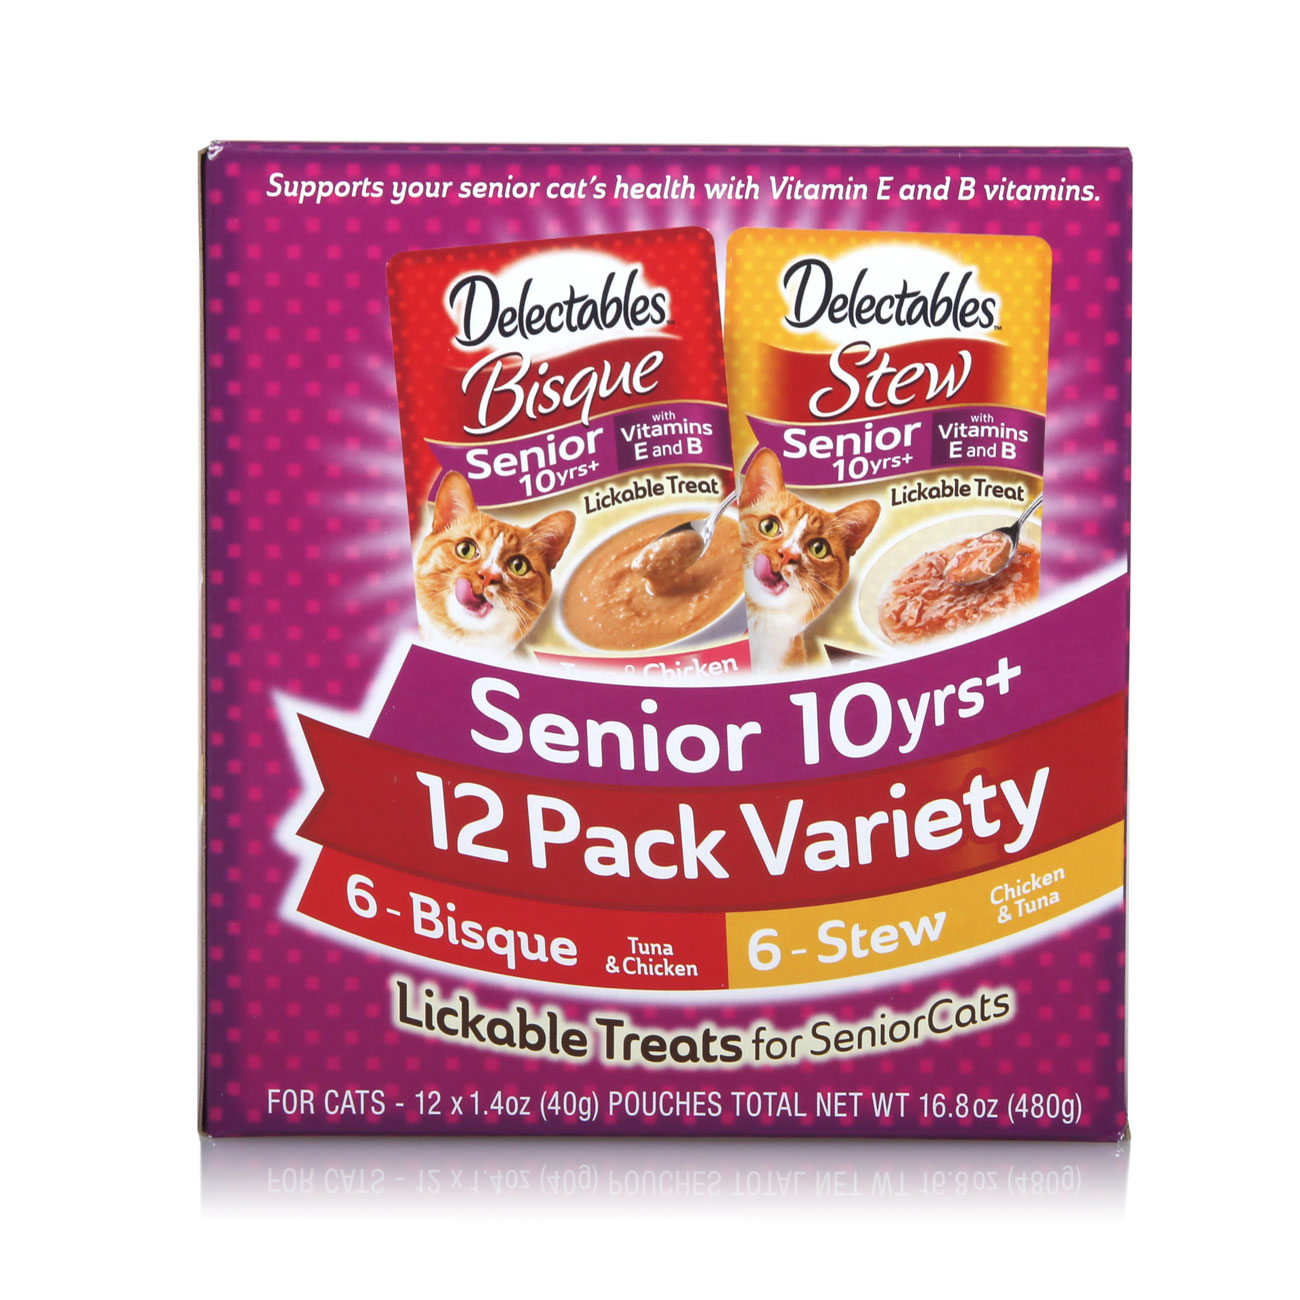 12 pack of chicken and tuna treats for senior cats, Hartz SKU 3270015746